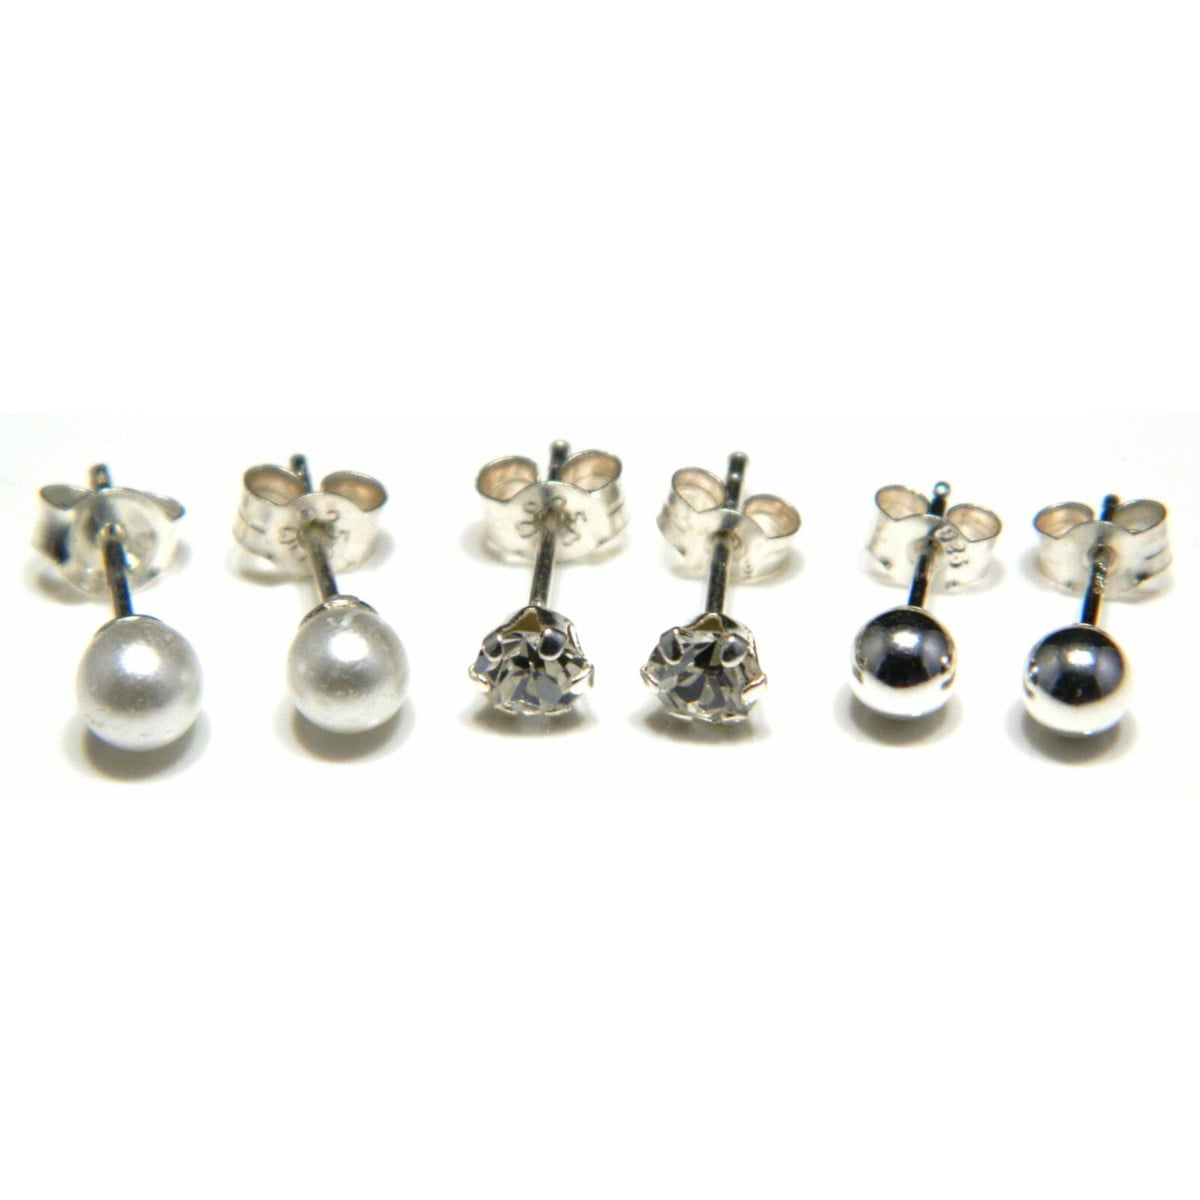 3 pairs (4 mm ball, pearl, and CZ) stud earrings in sterling silver